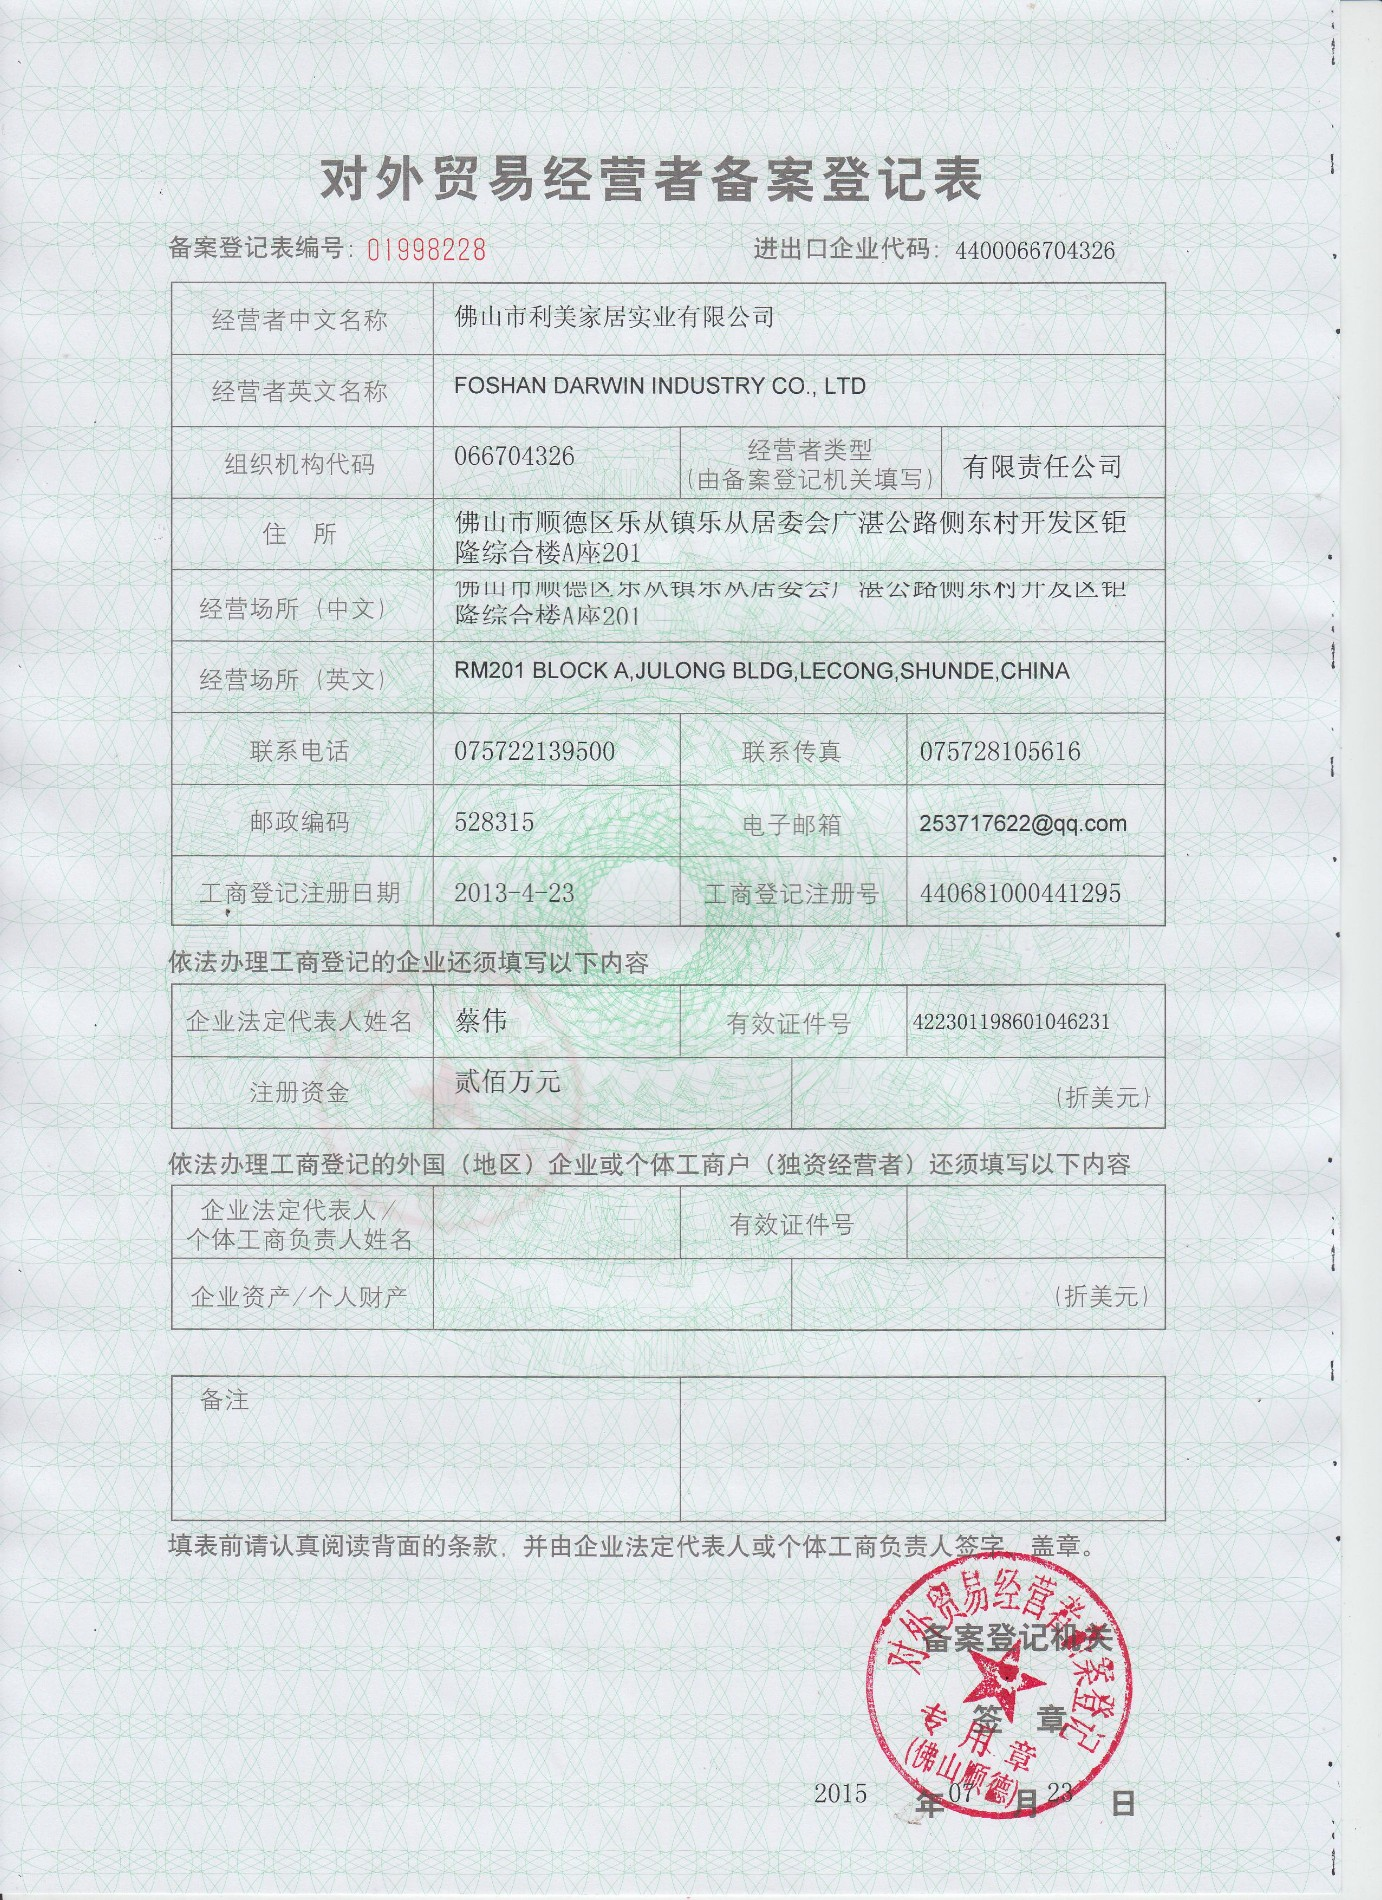 Our Export License